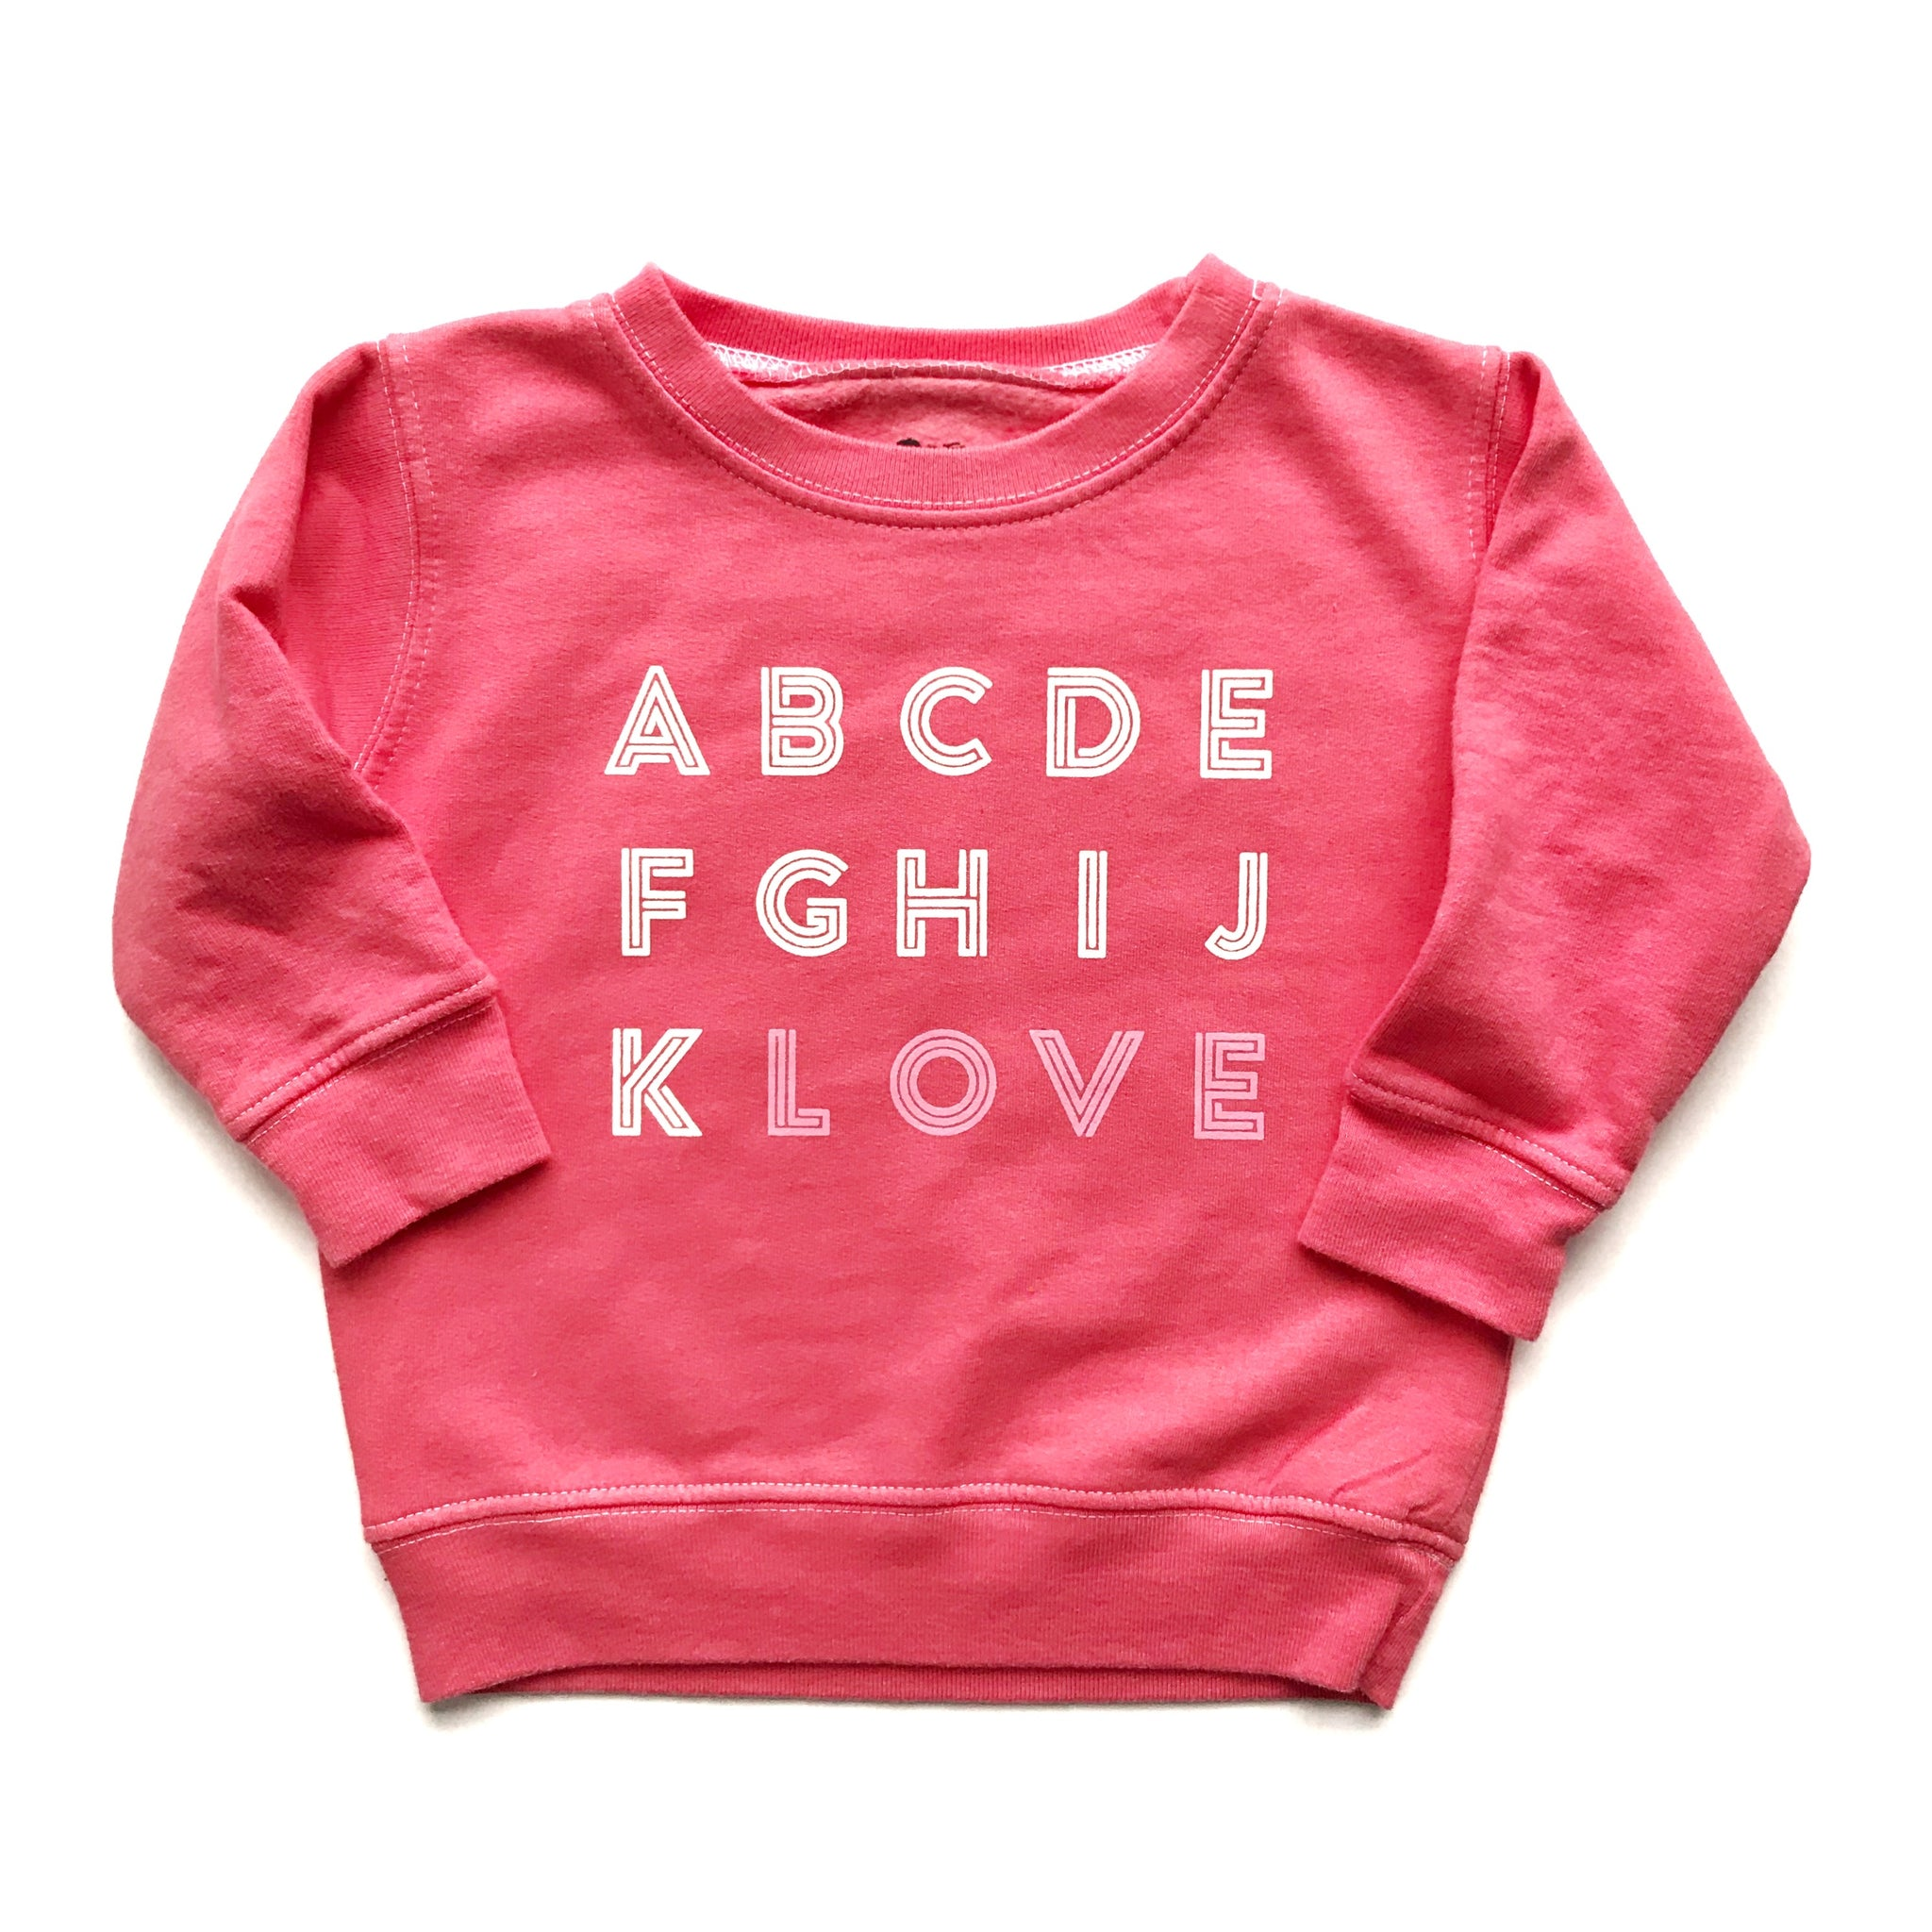 Coral Pink ABCD